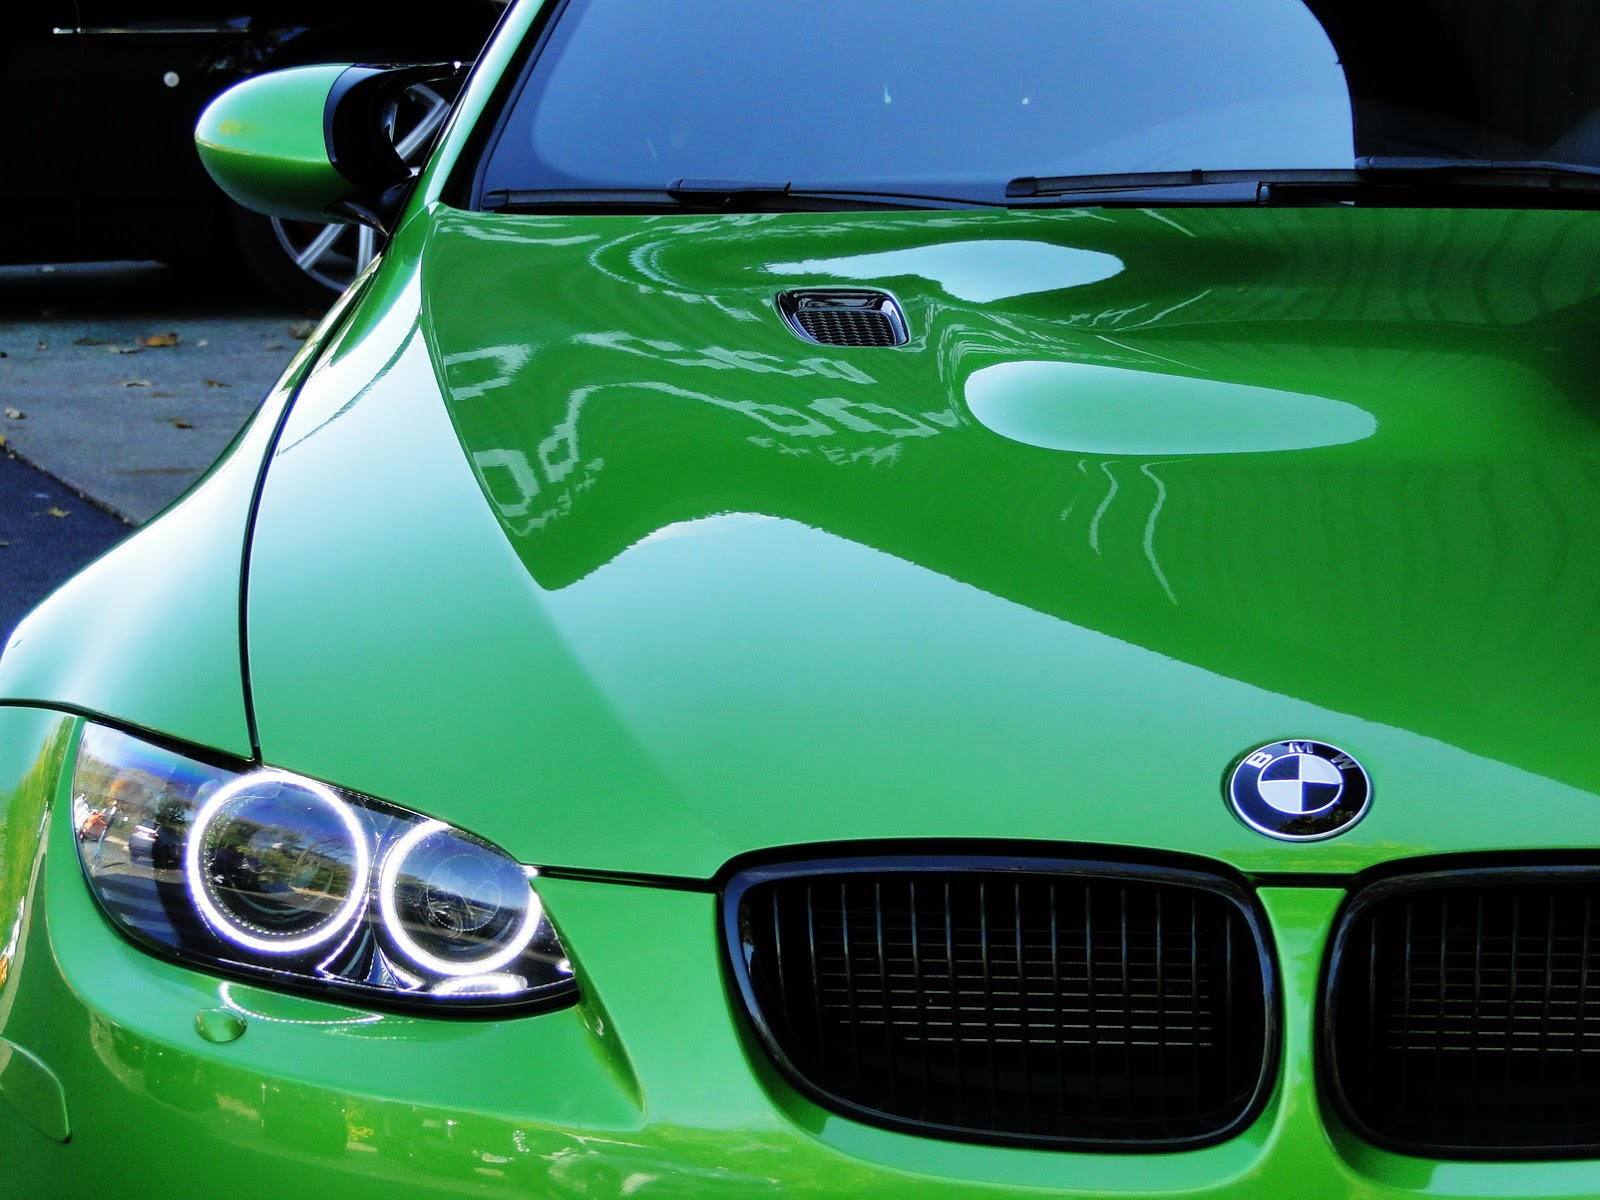 Individual Java Green BMW E92 M3 Up for Sale - autoevolution